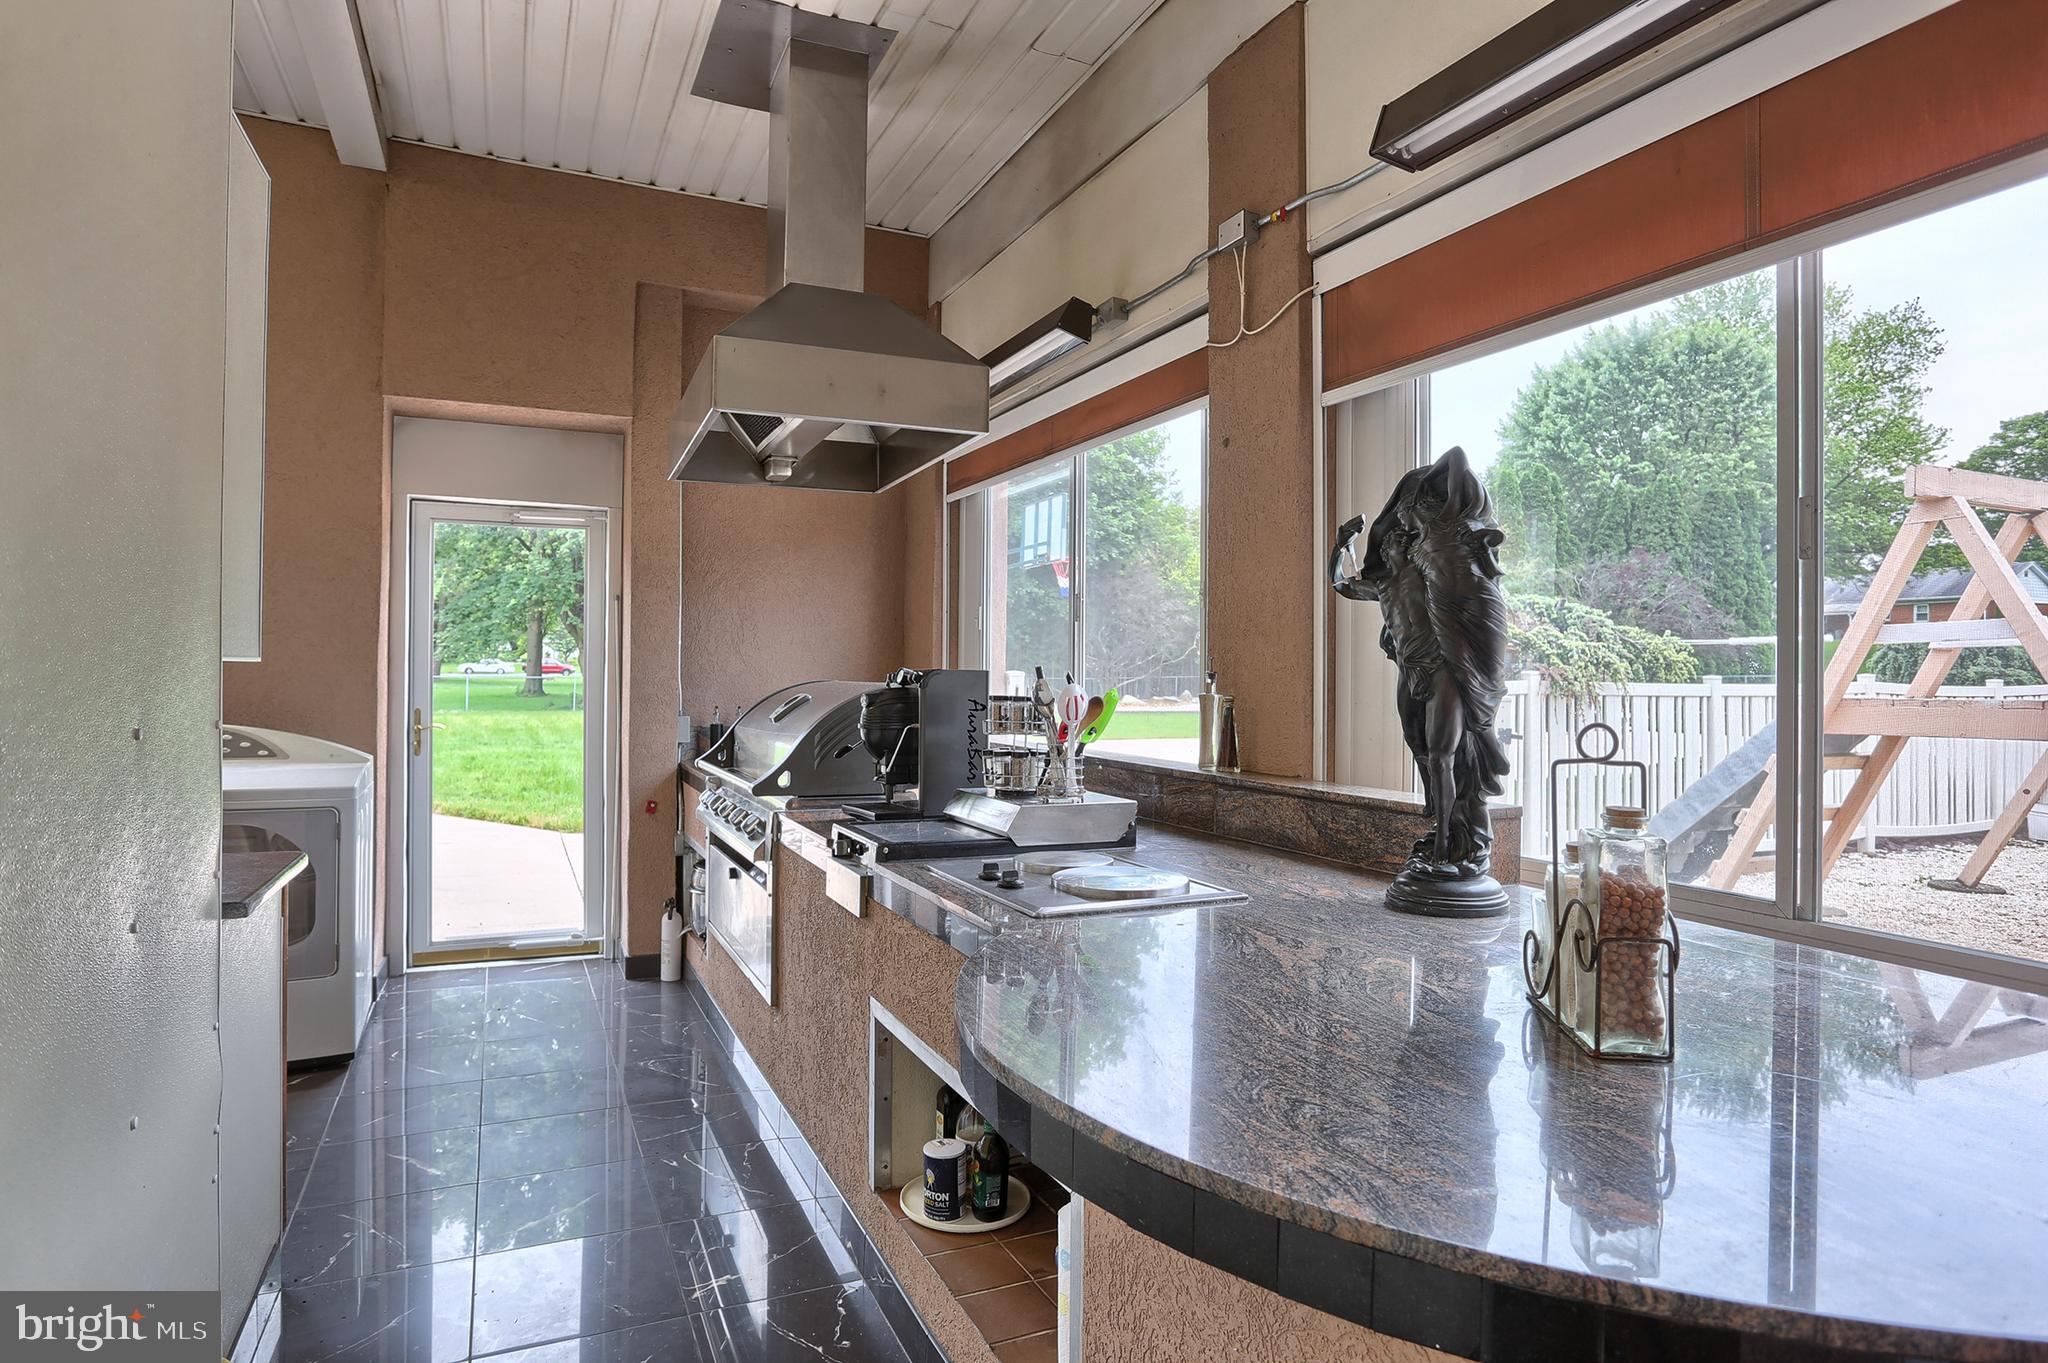 exterior kitchen # 3   with built in gas grill